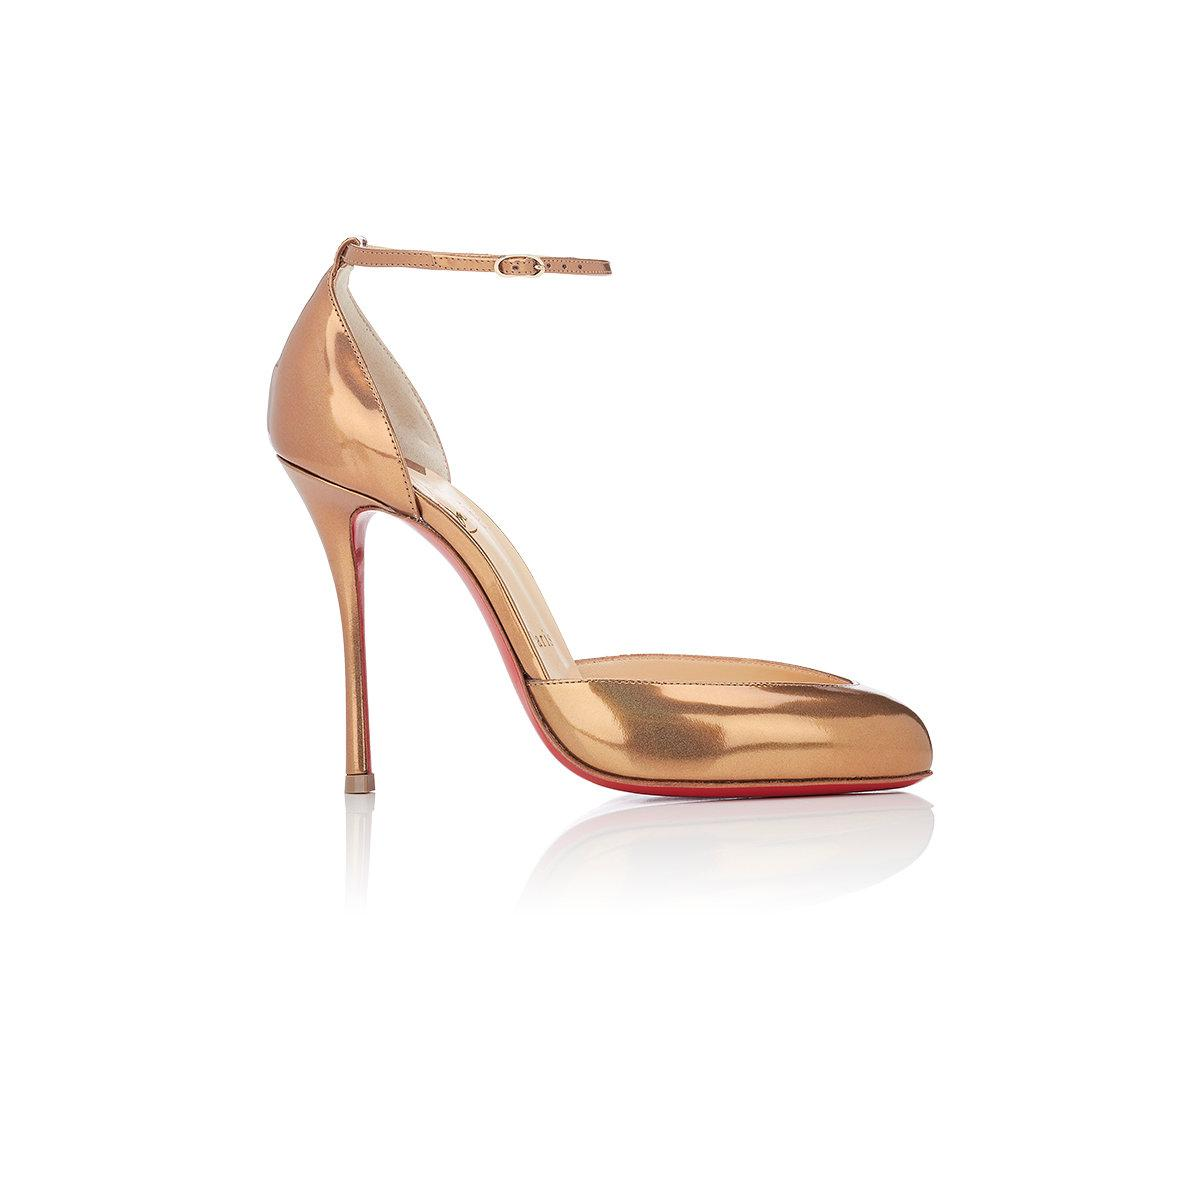 3afae1c46ca7 Lyst - Christian Louboutin Dollyla D orsay Pumps in Natural